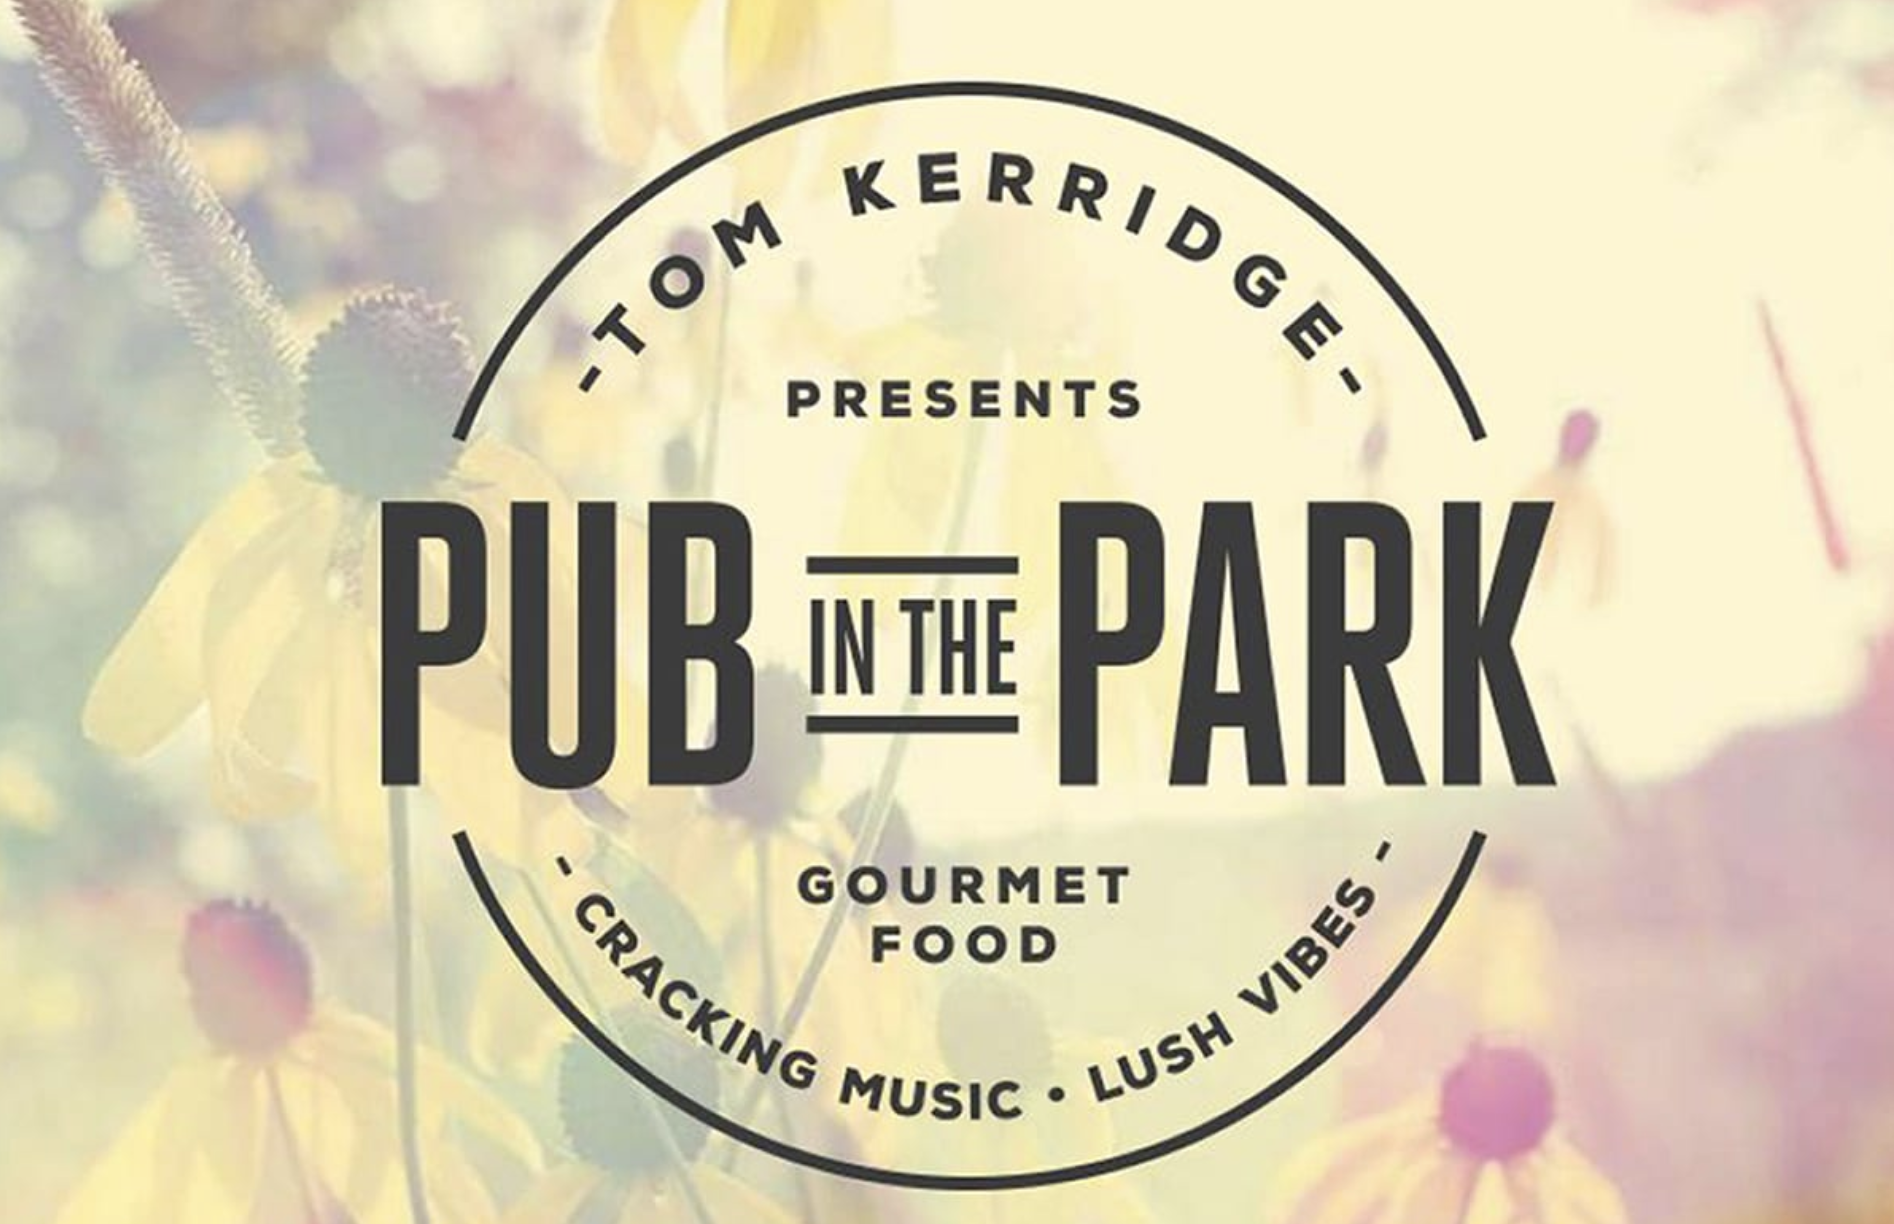 PUB IN THE PARK, ST ALBANS - 13th - 15th SEPTEMBER 2019We will be joining Tom Kerridge and his merry band of foodie friends in St Albans for thir Pub in the Park event on 13th-15th September 2019.